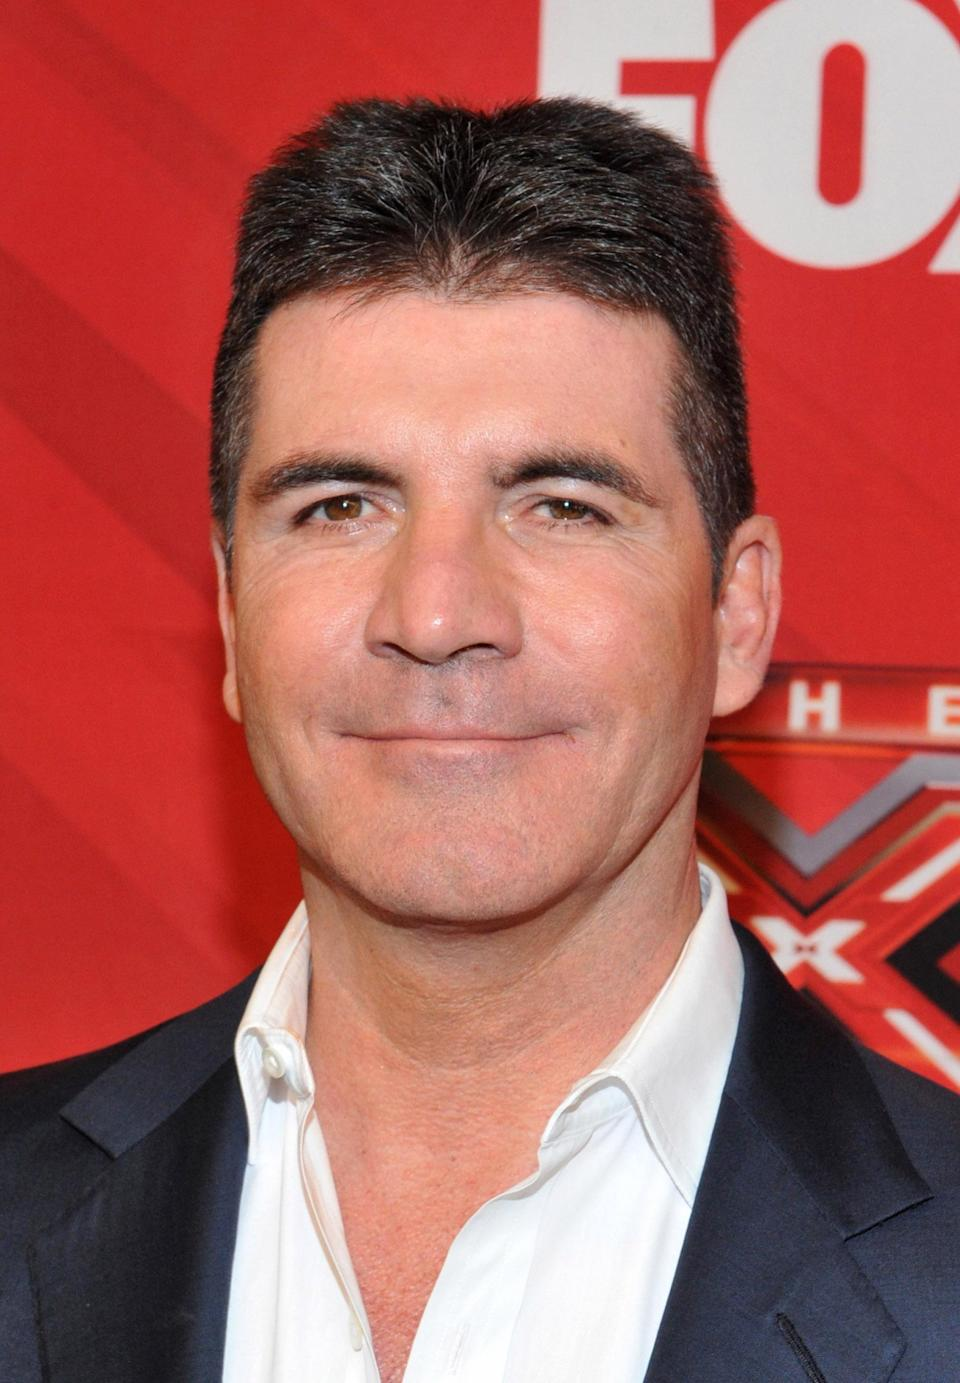 """<div class=""""caption-credit""""> Photo by: (Photo by Mark Davis/Getty Images)</div>""""To me, Botox is no more unusual than toothpaste,"""" Simon Cowell admitted to <i>Glamour Magazine</i>. """"It works, you do it once a year - who cares?"""""""